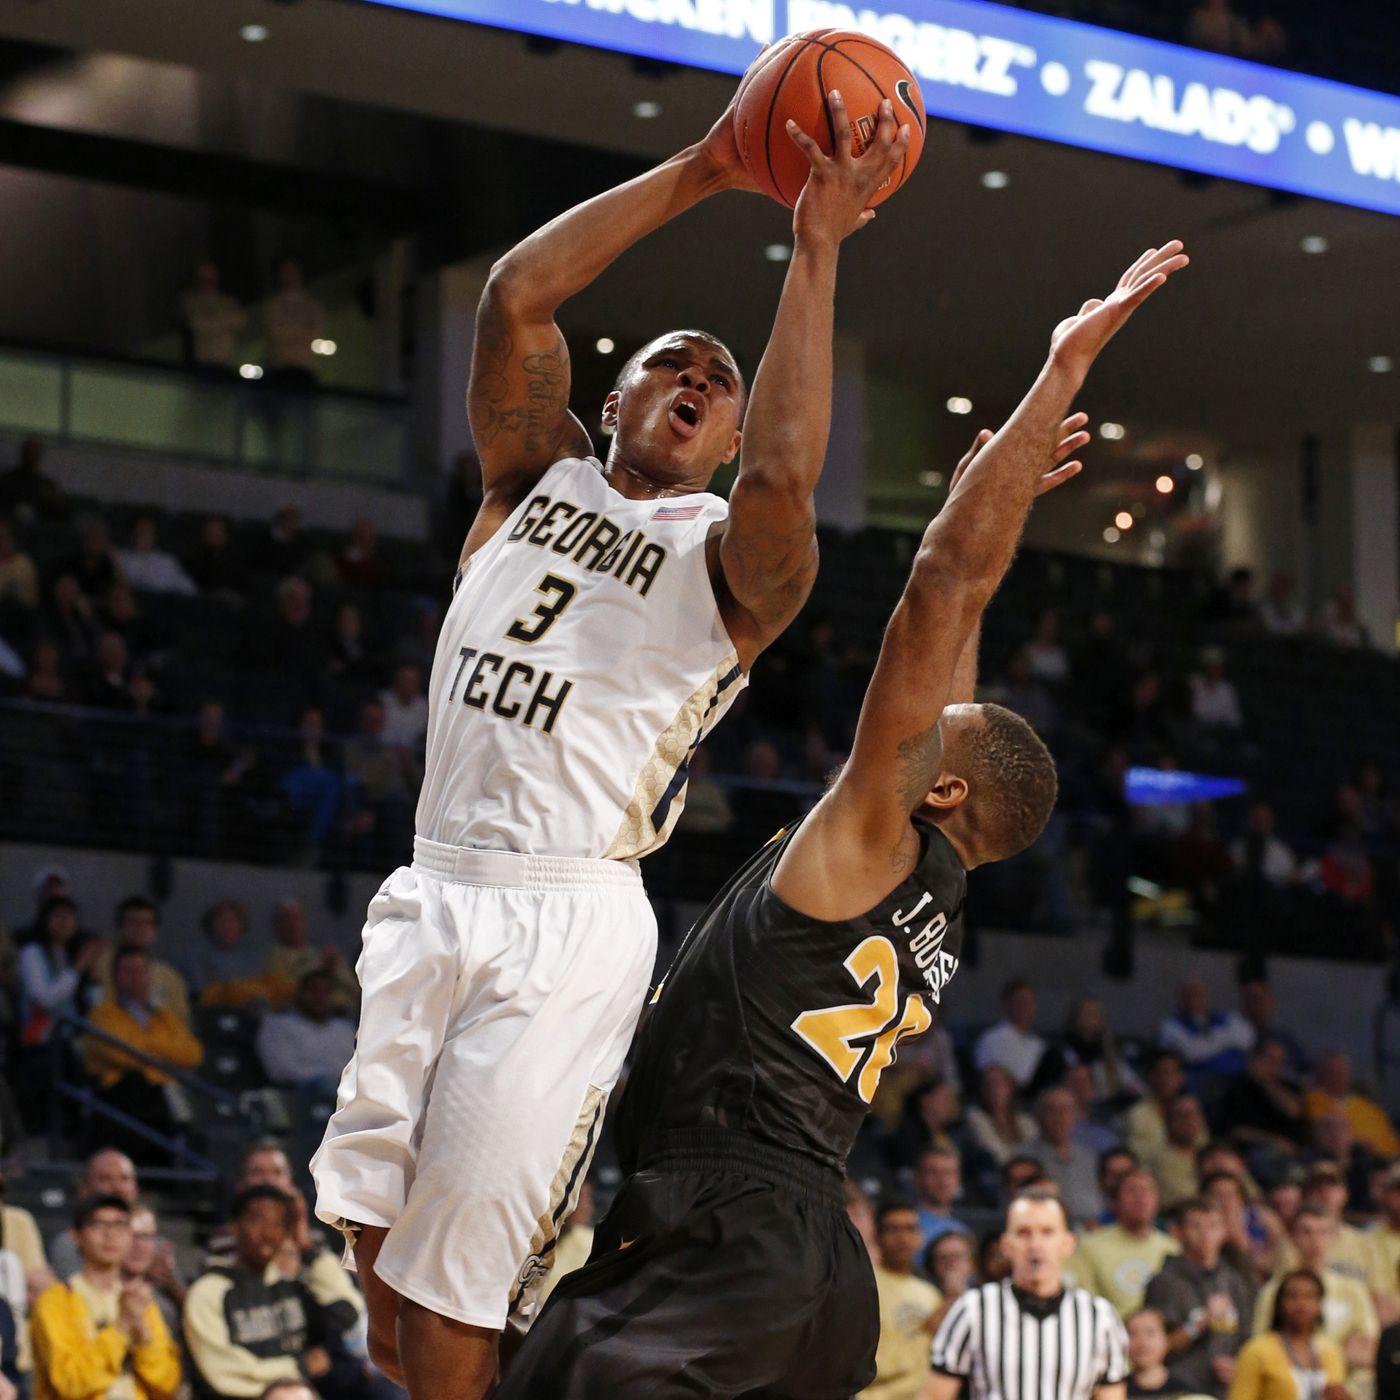 Georgia Tech Yellow Jackets Vs Colgate Raiders How To Watch Gamethread Preview And More From The Rumble Seat